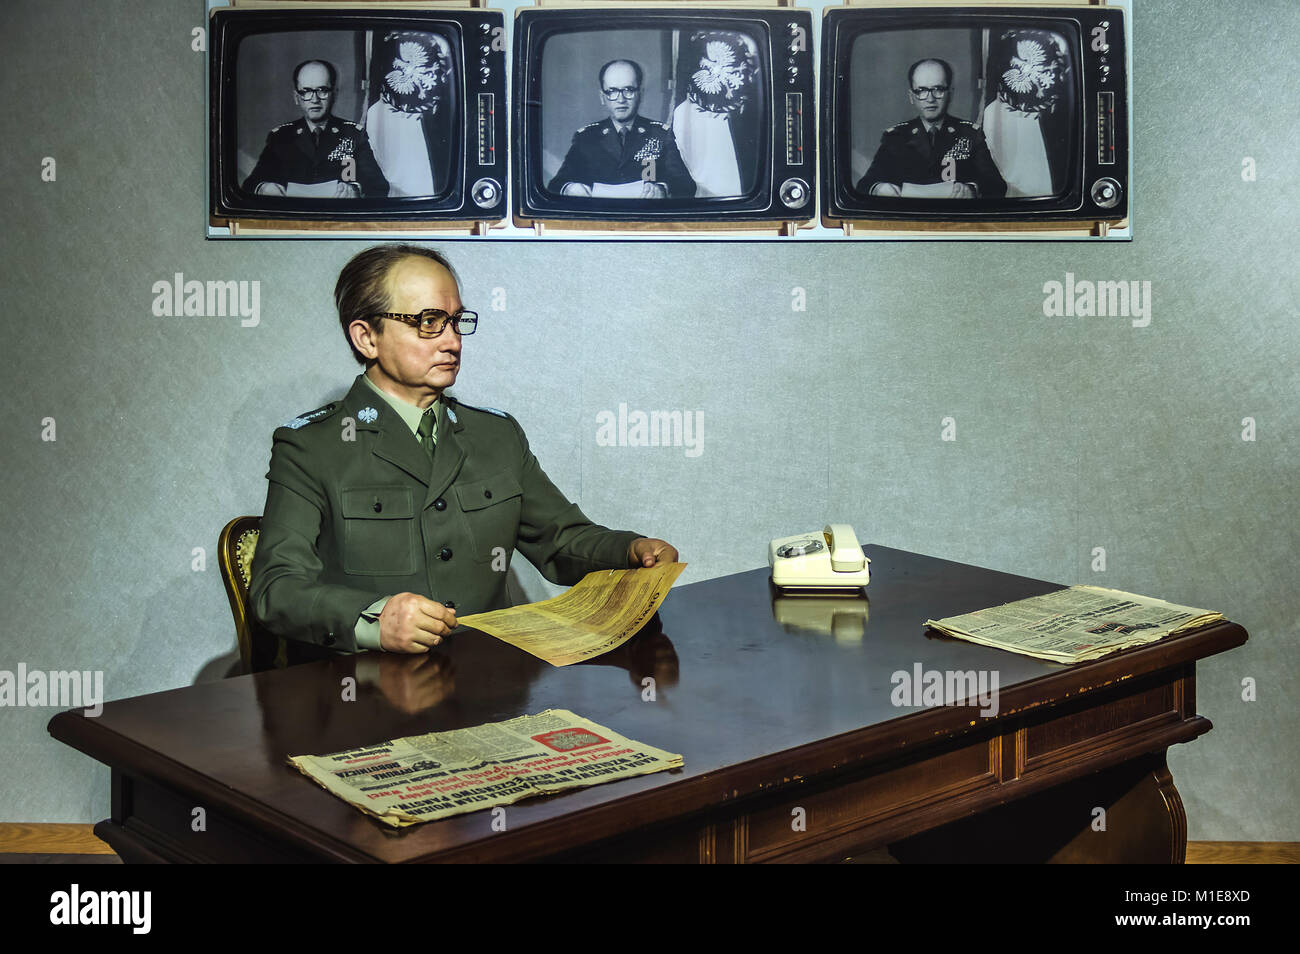 Wax statue of General Wojciech Jaruzelski, the last leader of the communist Poland at the Krakow Wax Museum - Cracow, - Stock Image